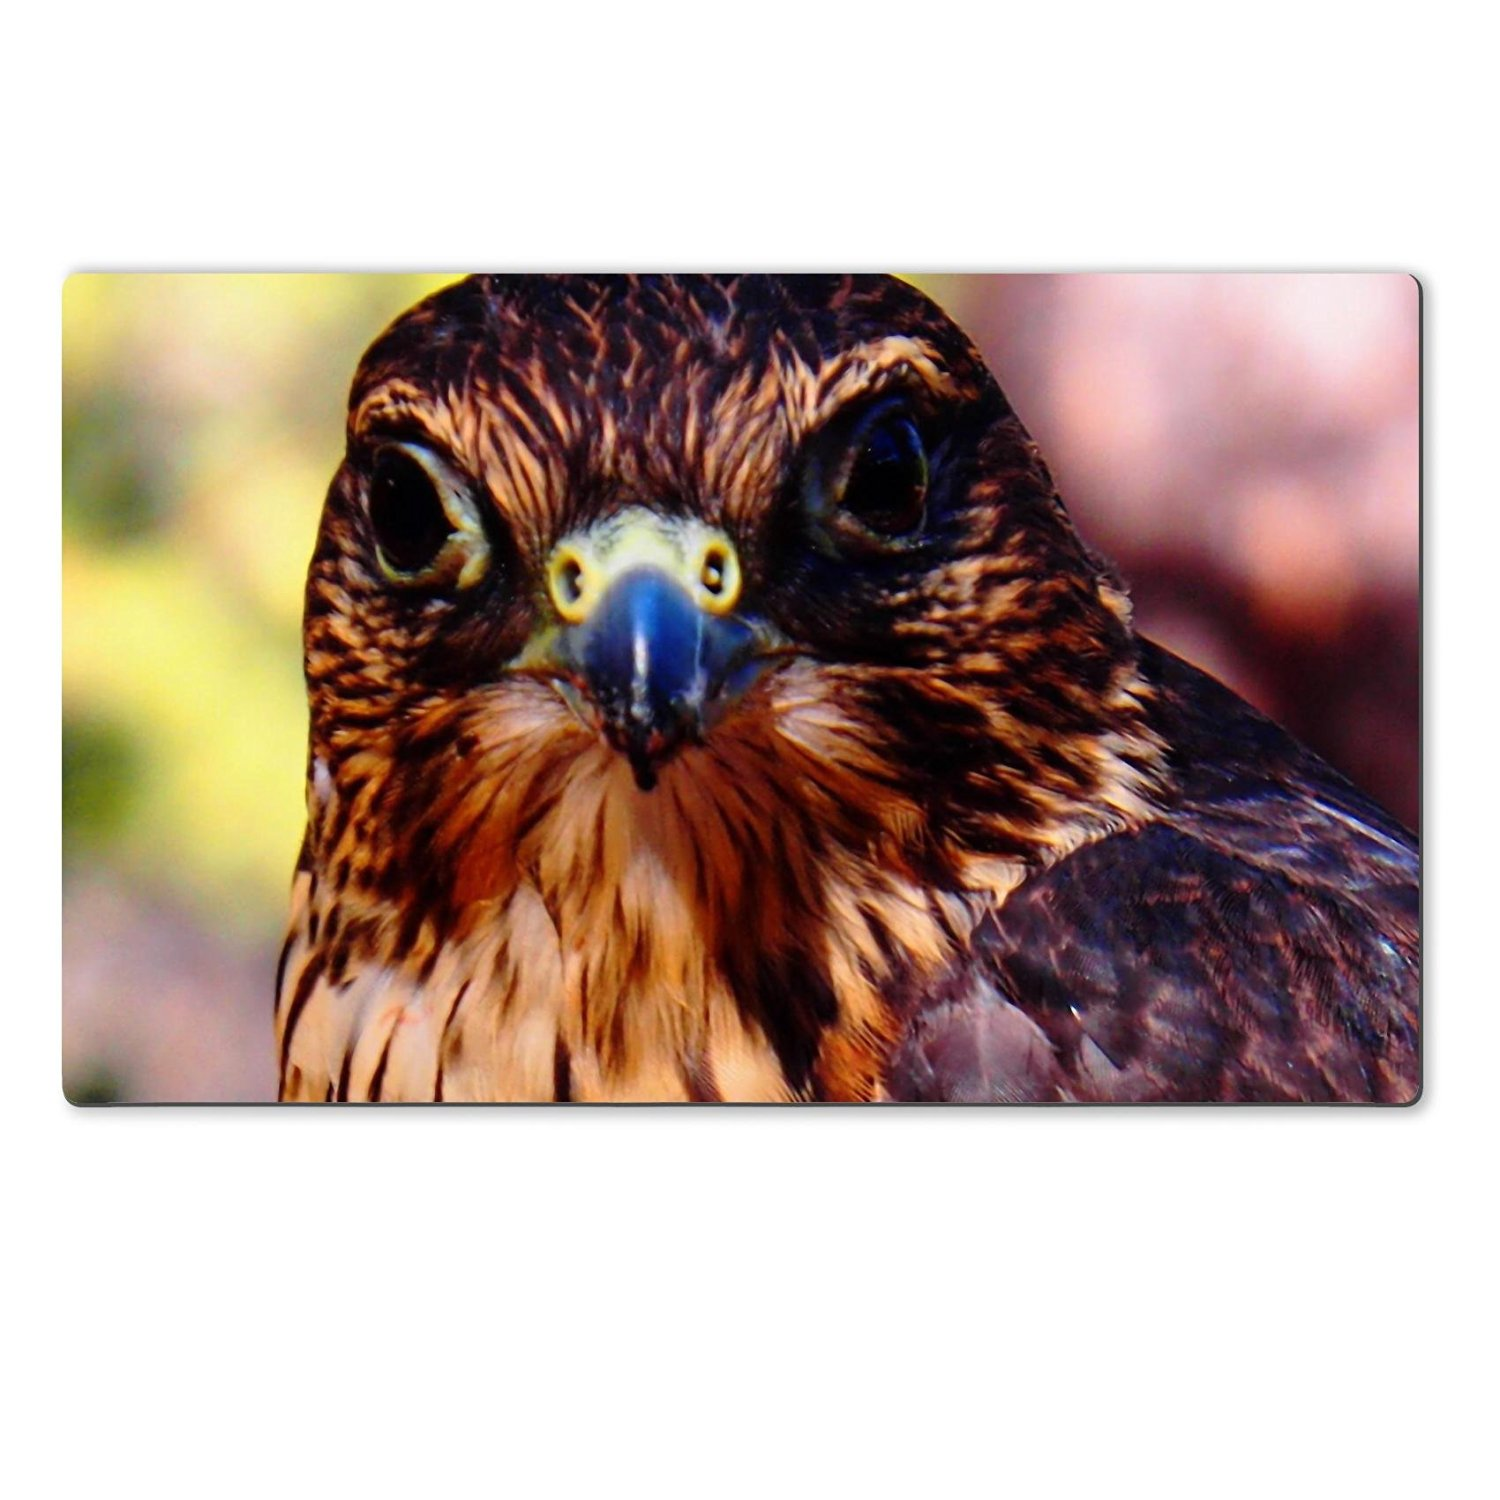 Luxlady Large TableMat Natural Rubber Material Image 19144995661